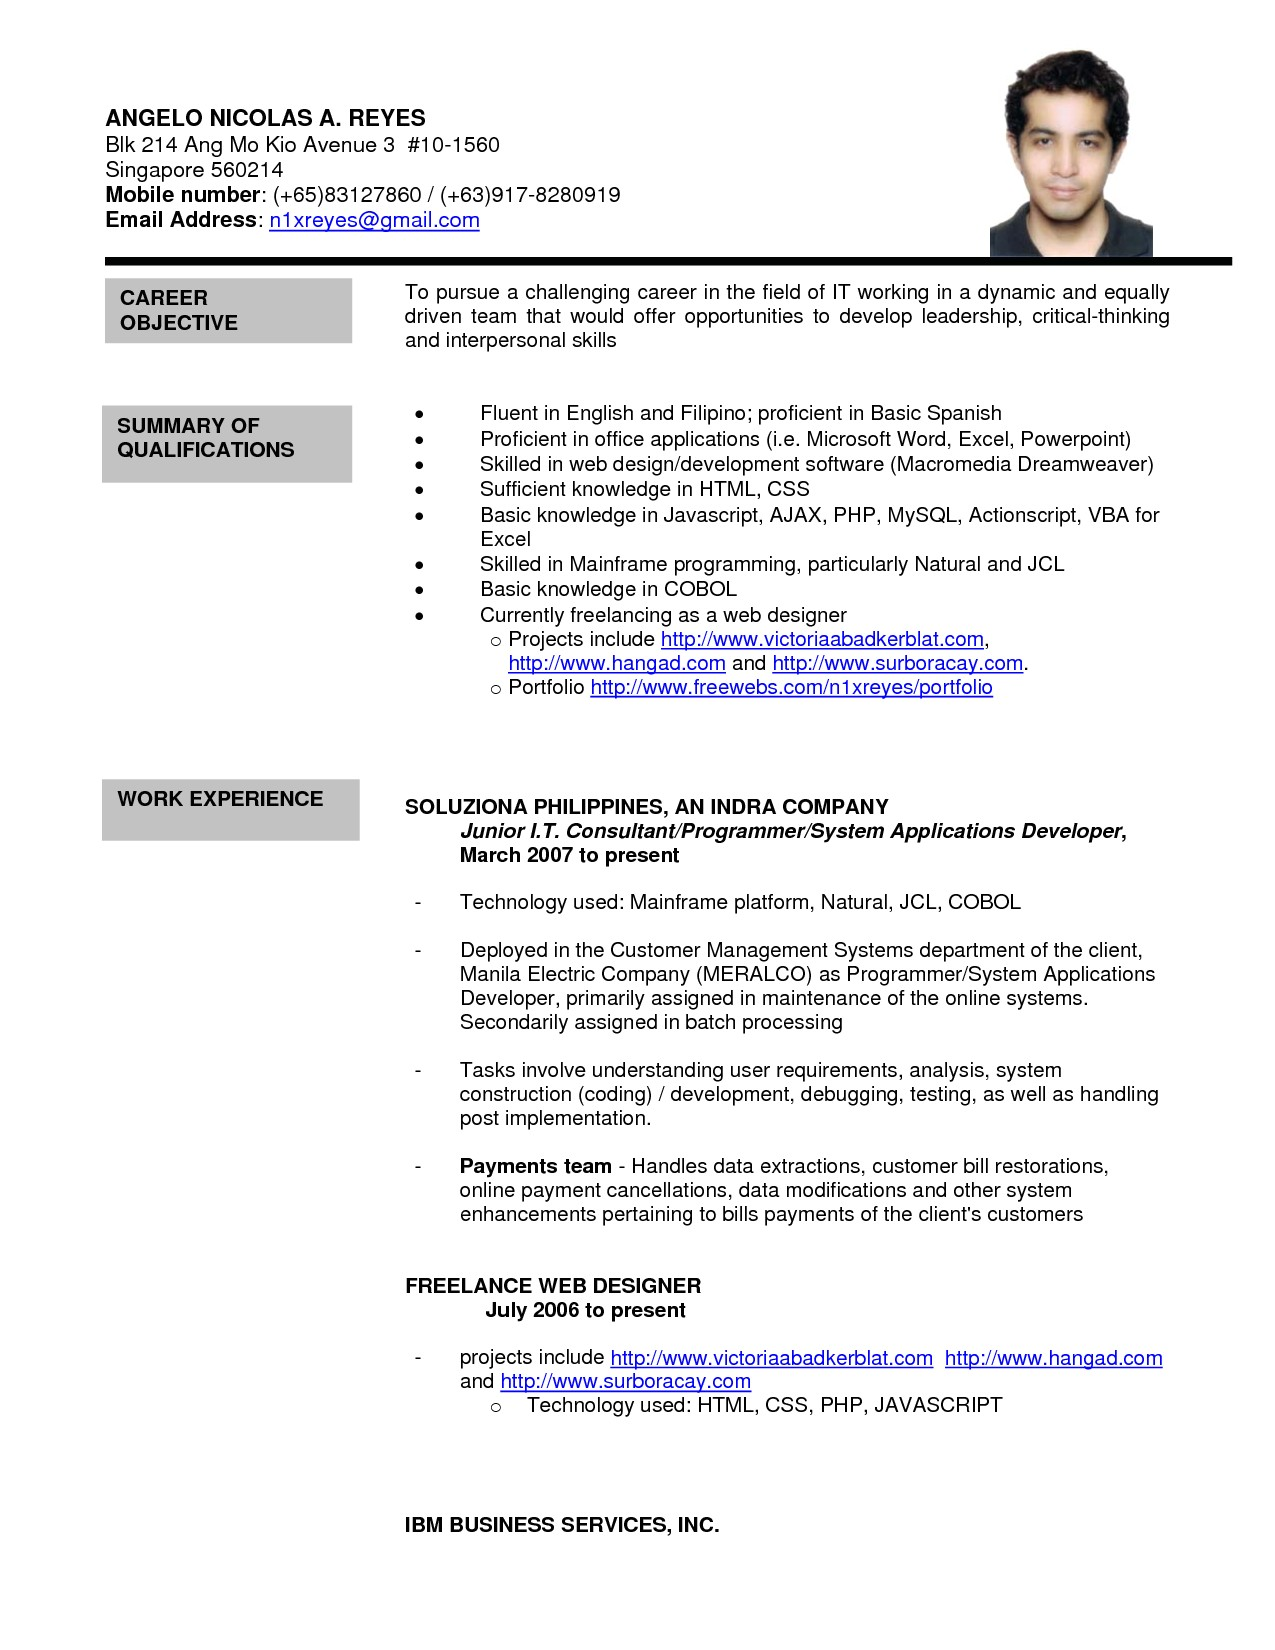 Sample Character Reference In Resume formal Letter Sample Sample Resume format Best Template